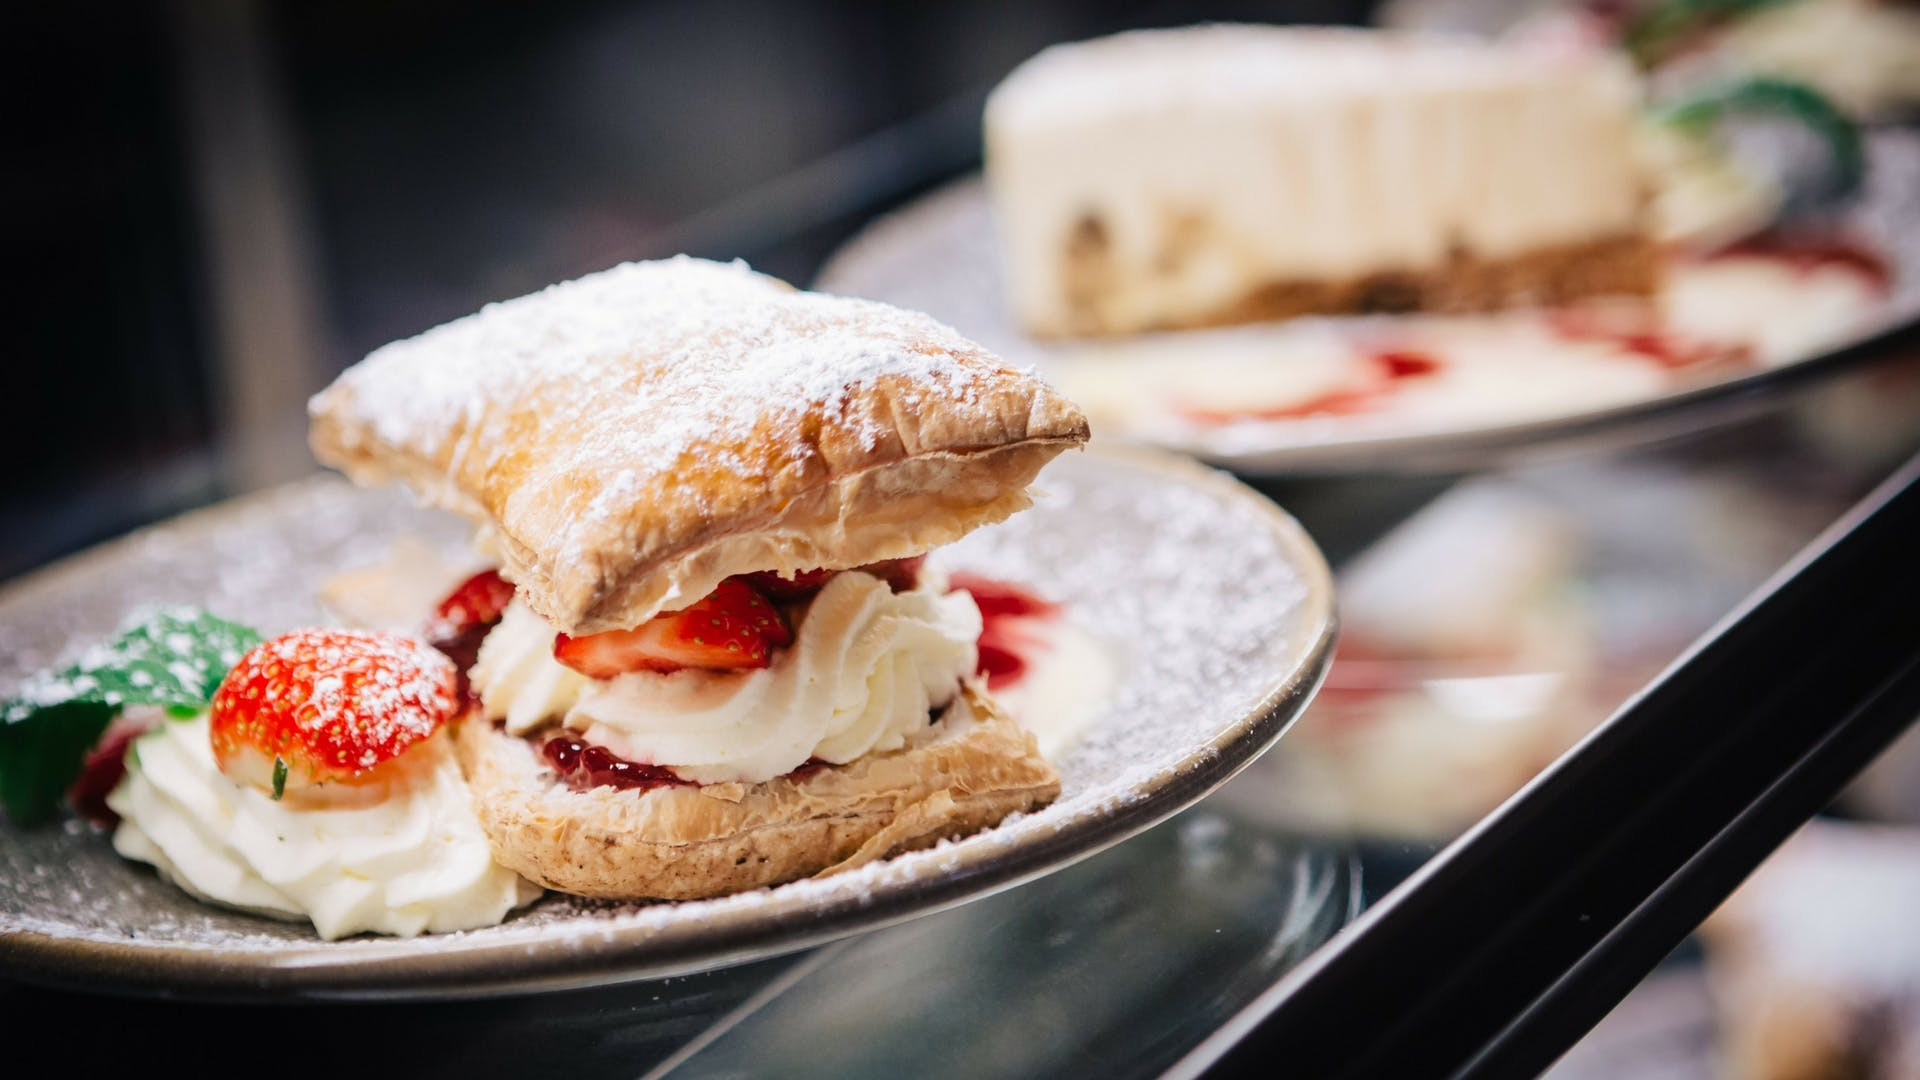 Homemade sweet treats at Gleesons Restaurant & Rooms, Roscommon